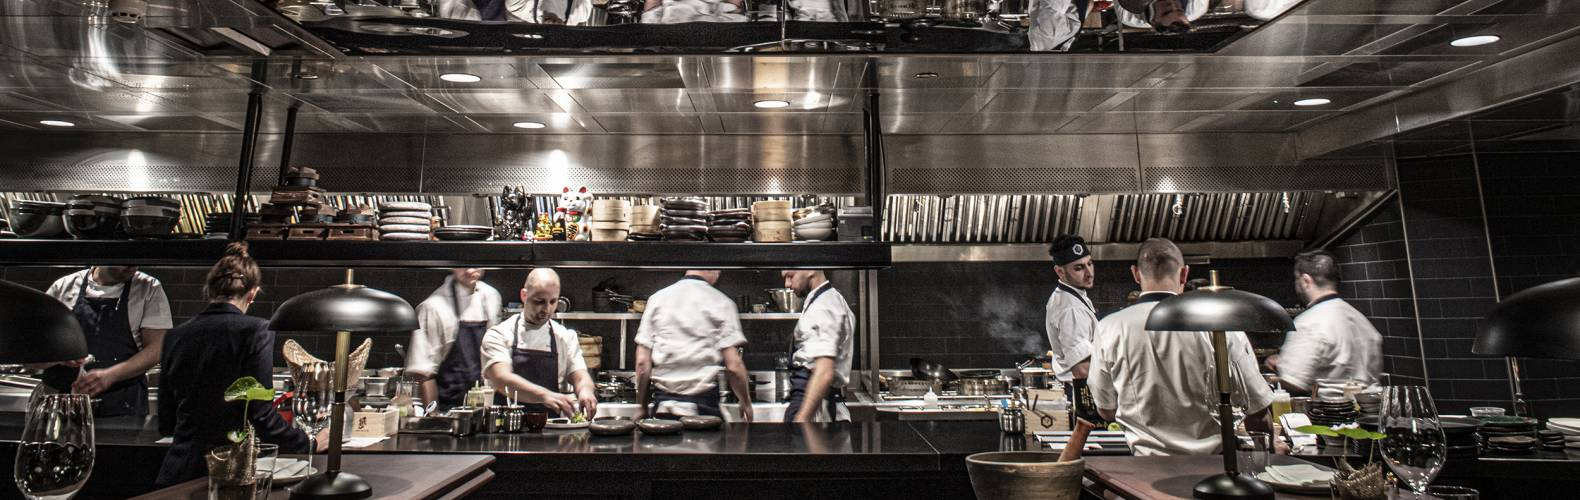 Lucky Cat Chefs in Action Behind the Pass 2500px